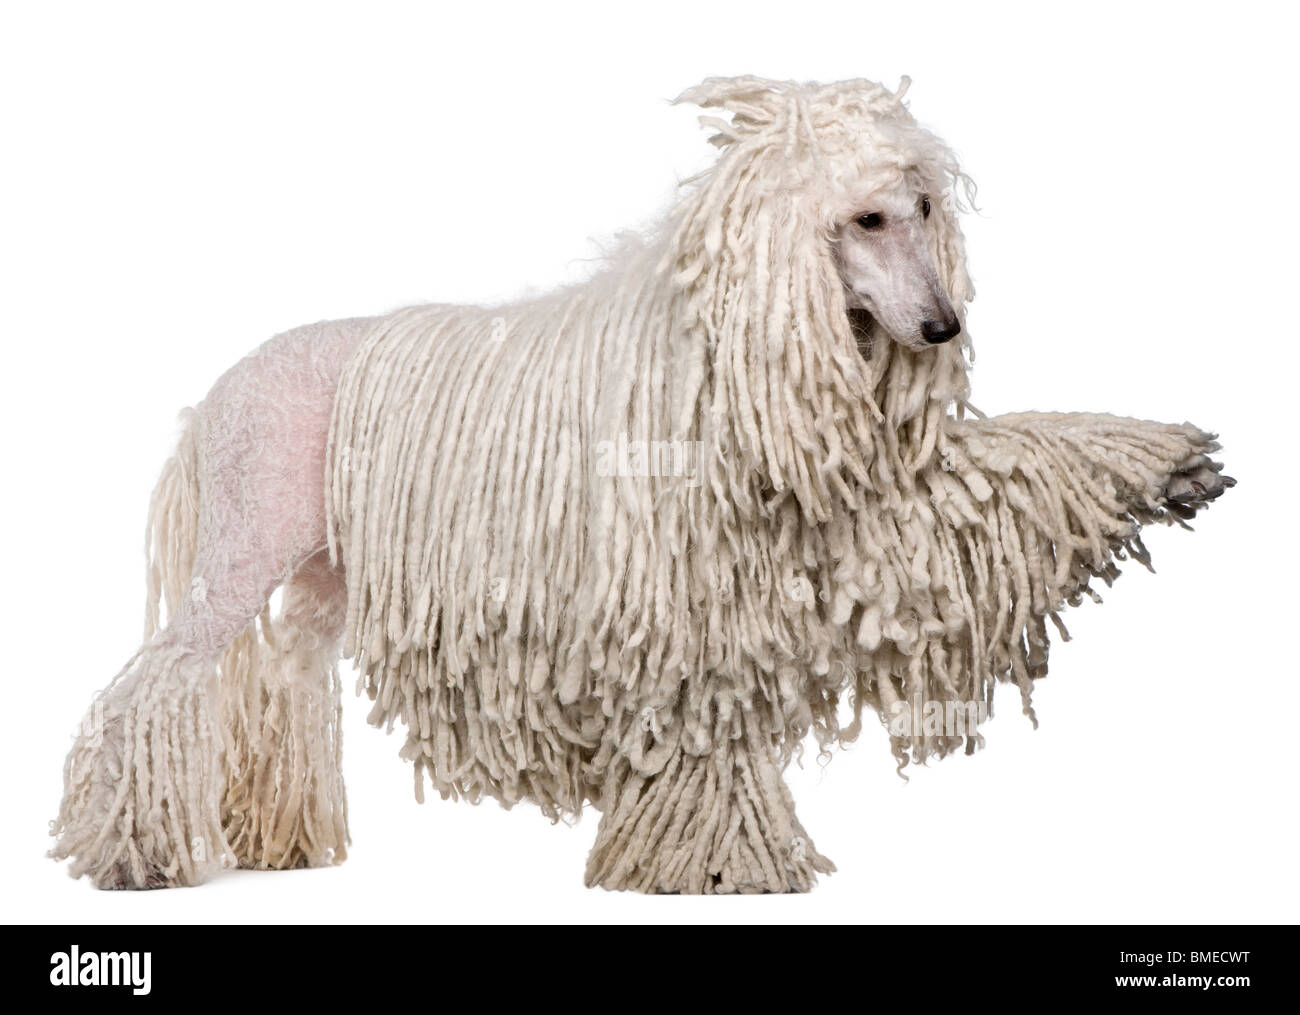 Side view of White Corded standard Poodle with raised paw standing in front of white background - Stock Image